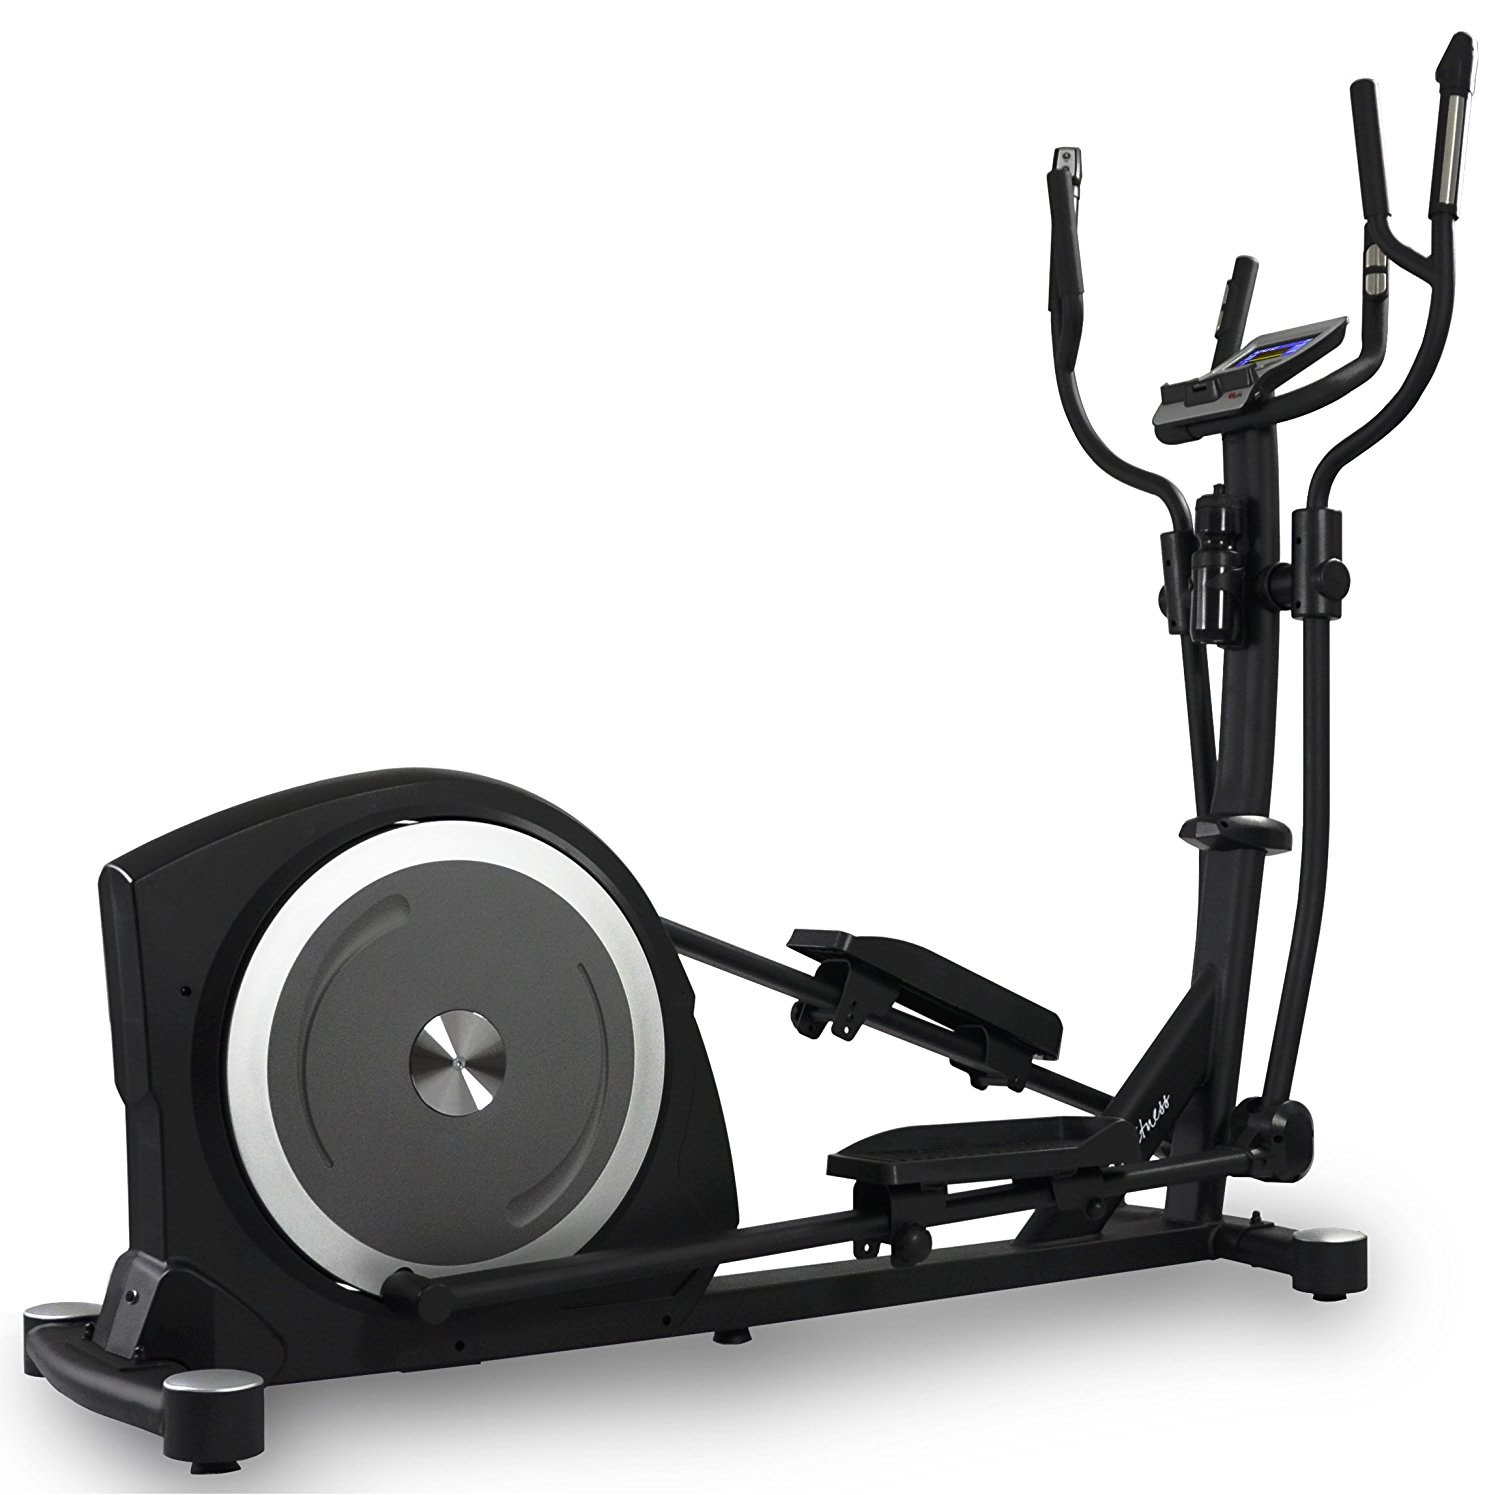 Home Gym Zone: JTX Zenith Elliptical Gym Cross Trainer, Review